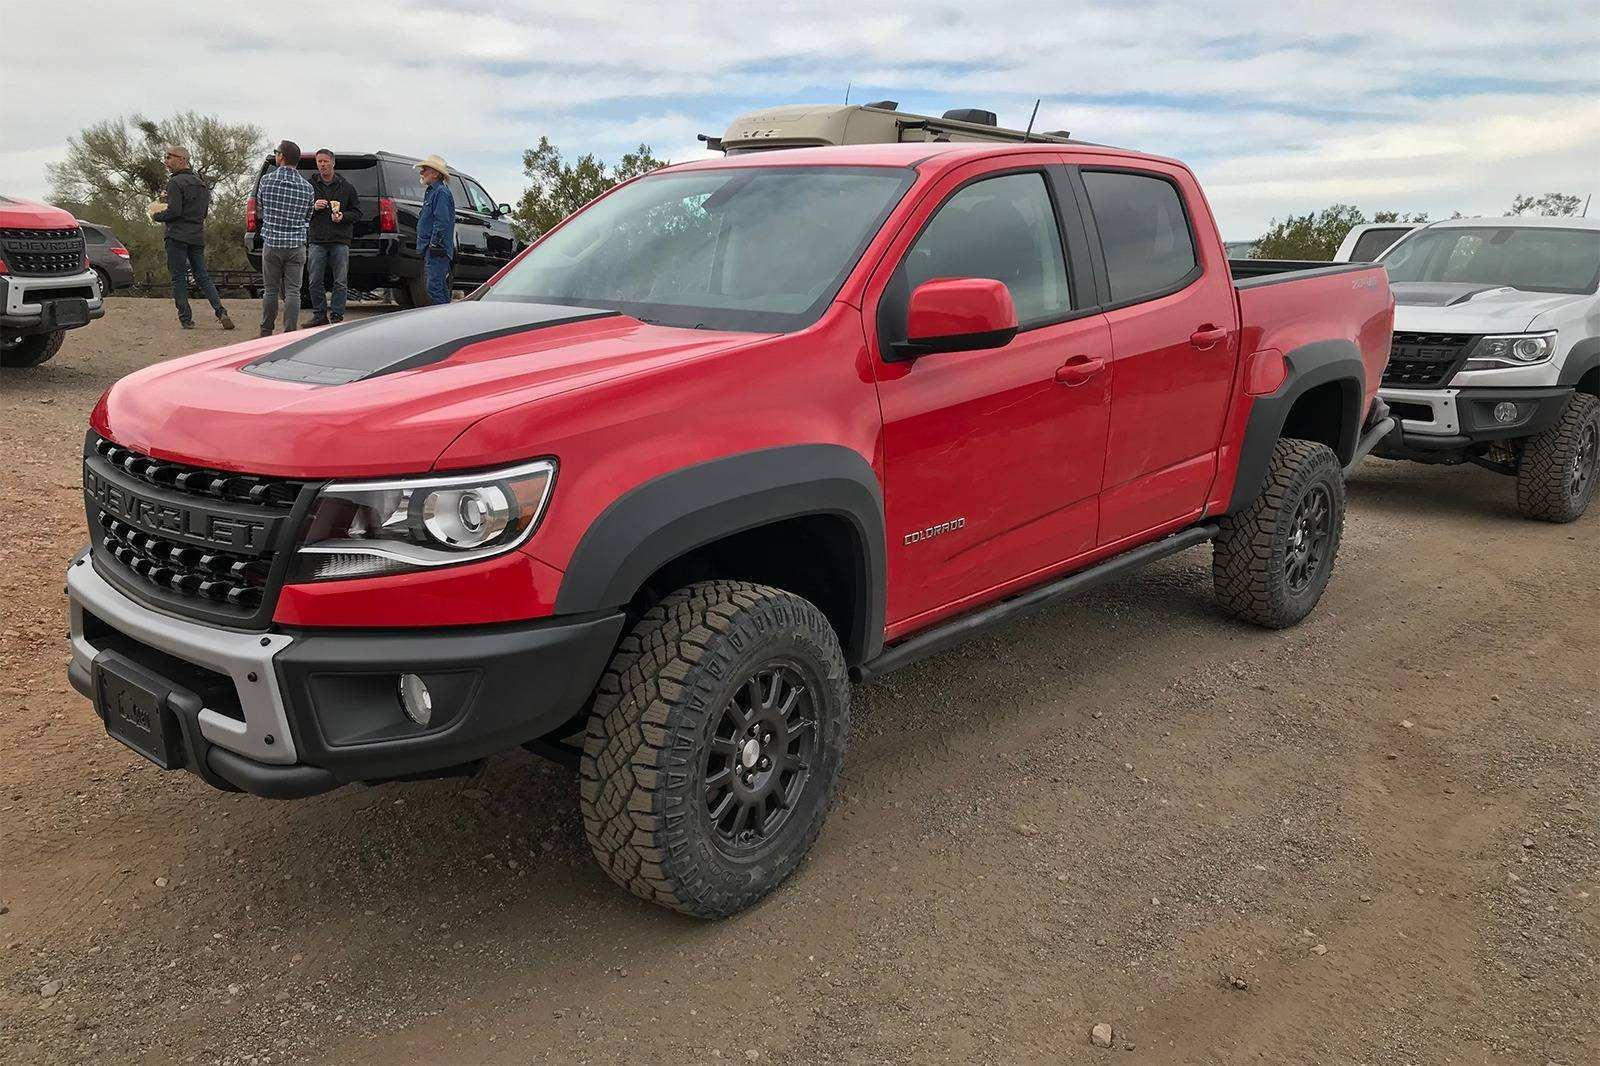 92 All New The Gmc Colorado 2019 Redesign Price And Review Spesification by The Gmc Colorado 2019 Redesign Price And Review